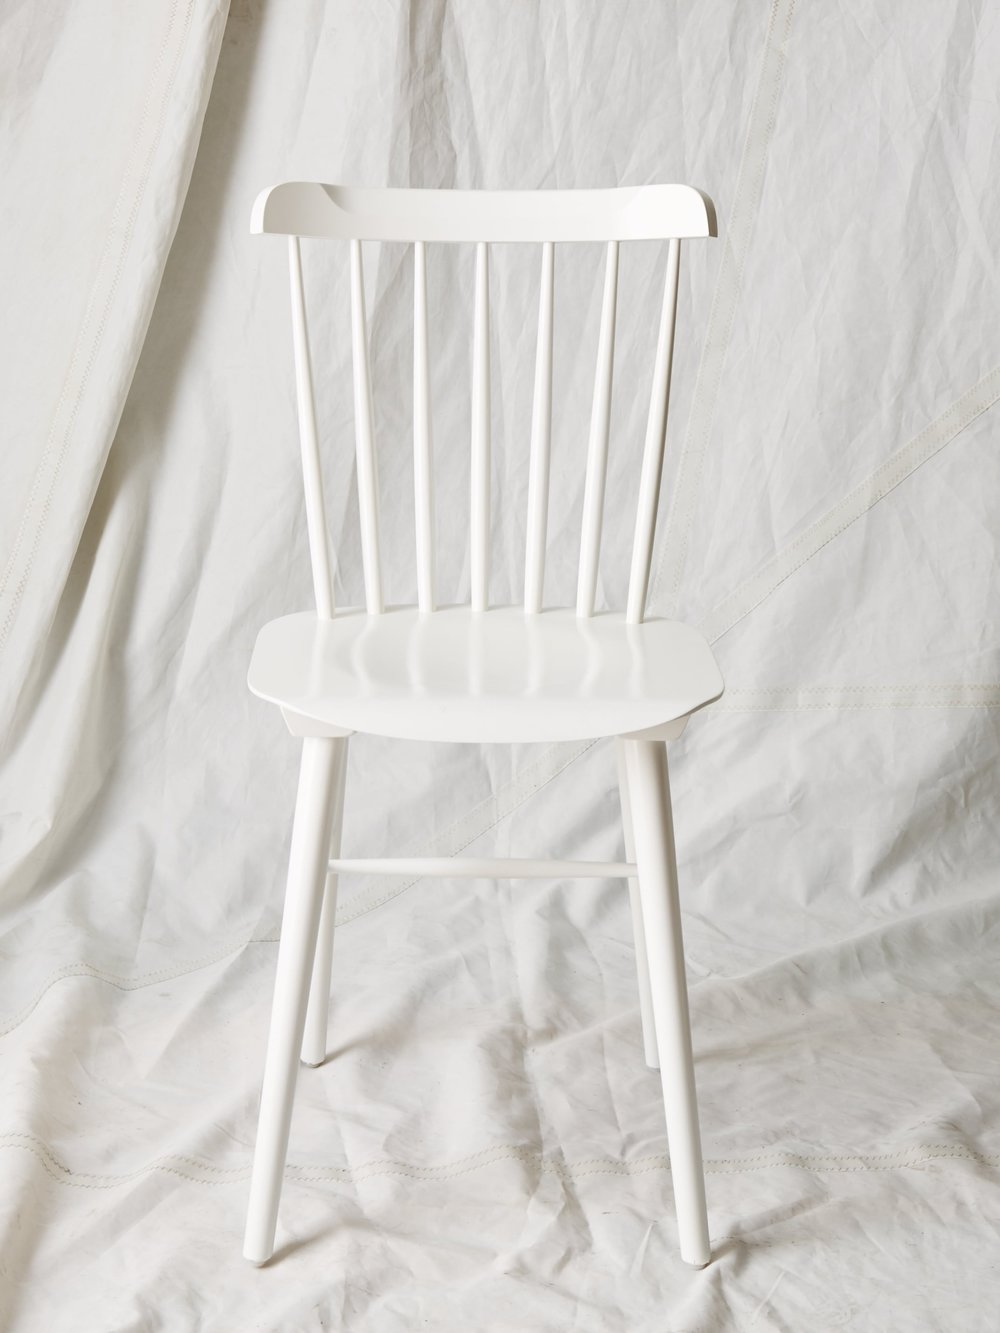 "CH004  White DWR Salt chair 34"" H x 15"" W x 16"" D  $75/week"